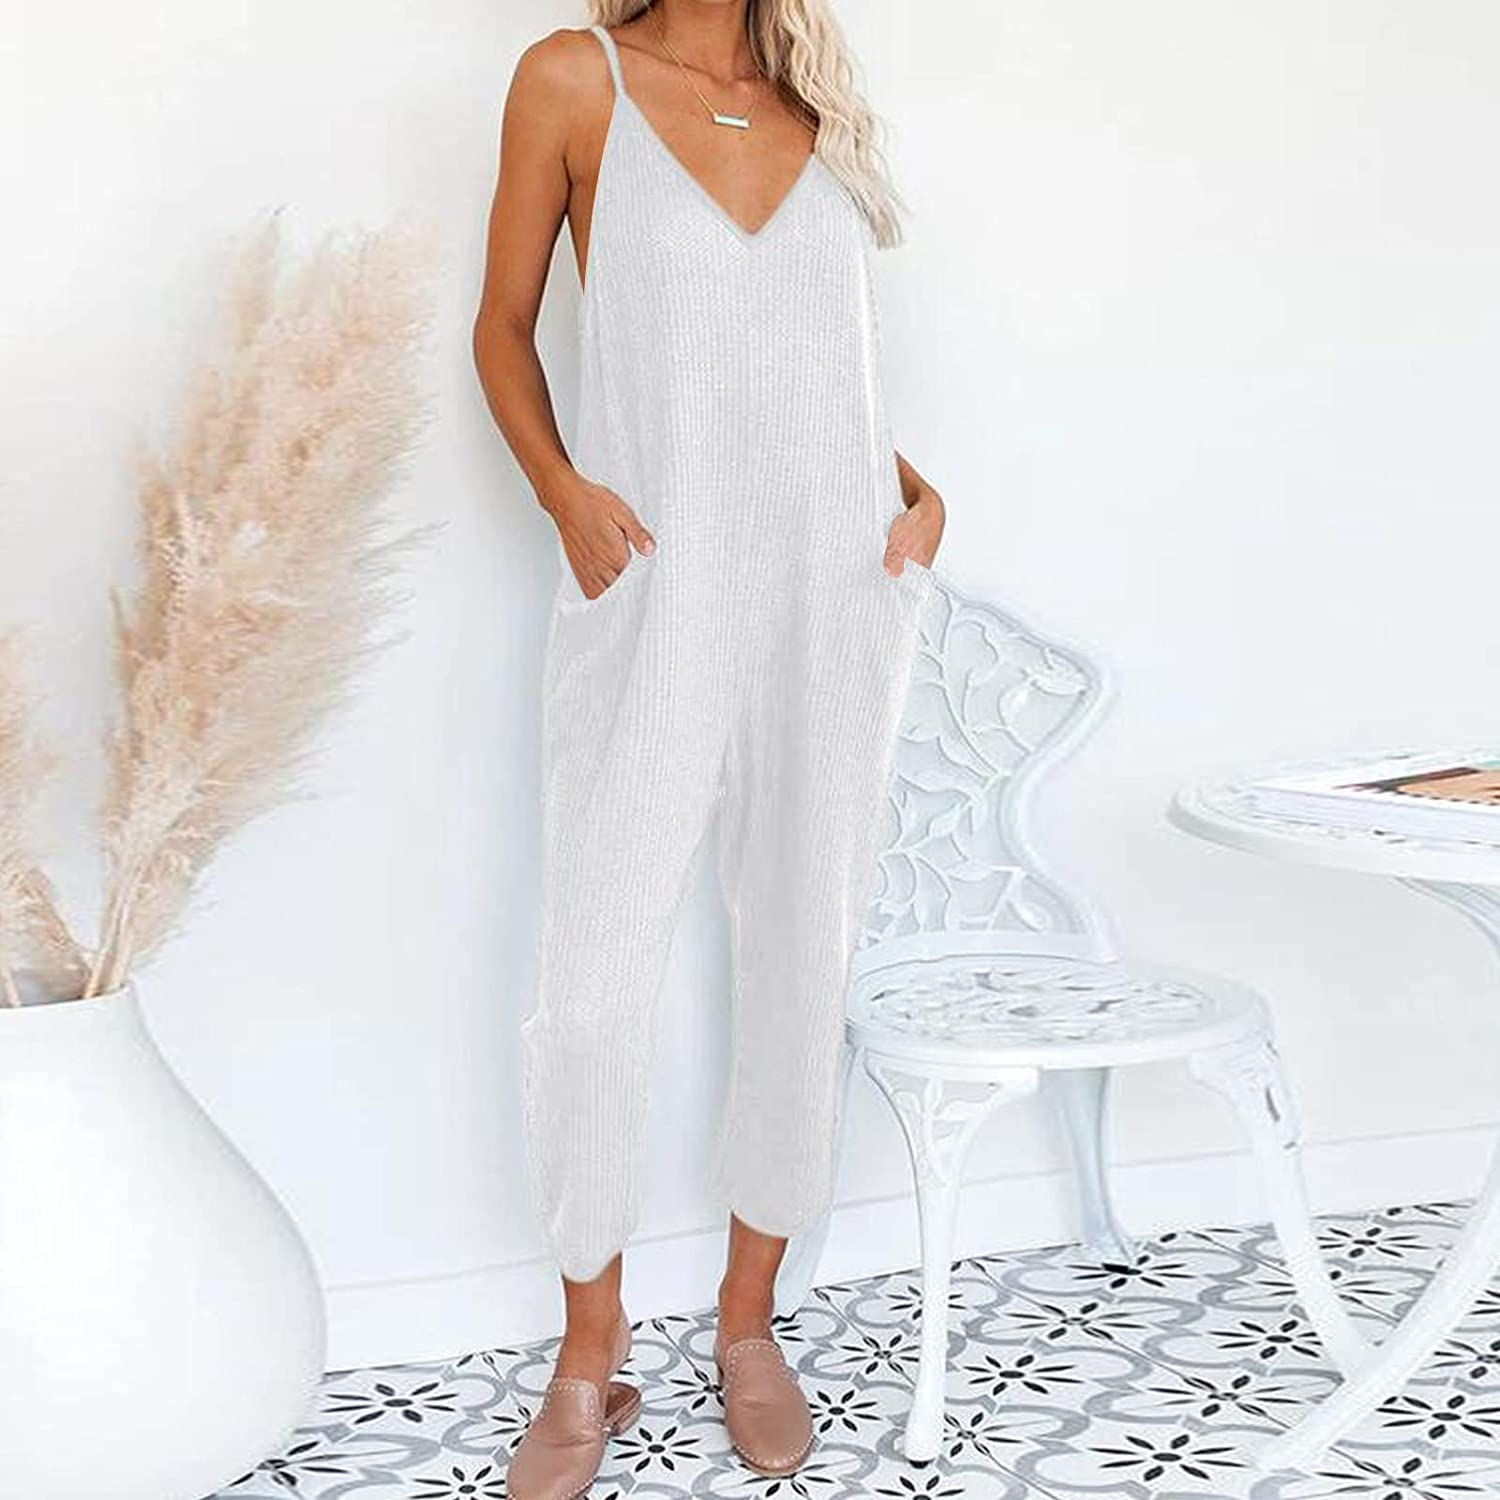 MURTIAL Womens Casual Spaghetti Strap Jumpsuits Sleeveless/Short Sleeve Stretchy Long Pants Romper with Pockets Loose Fit